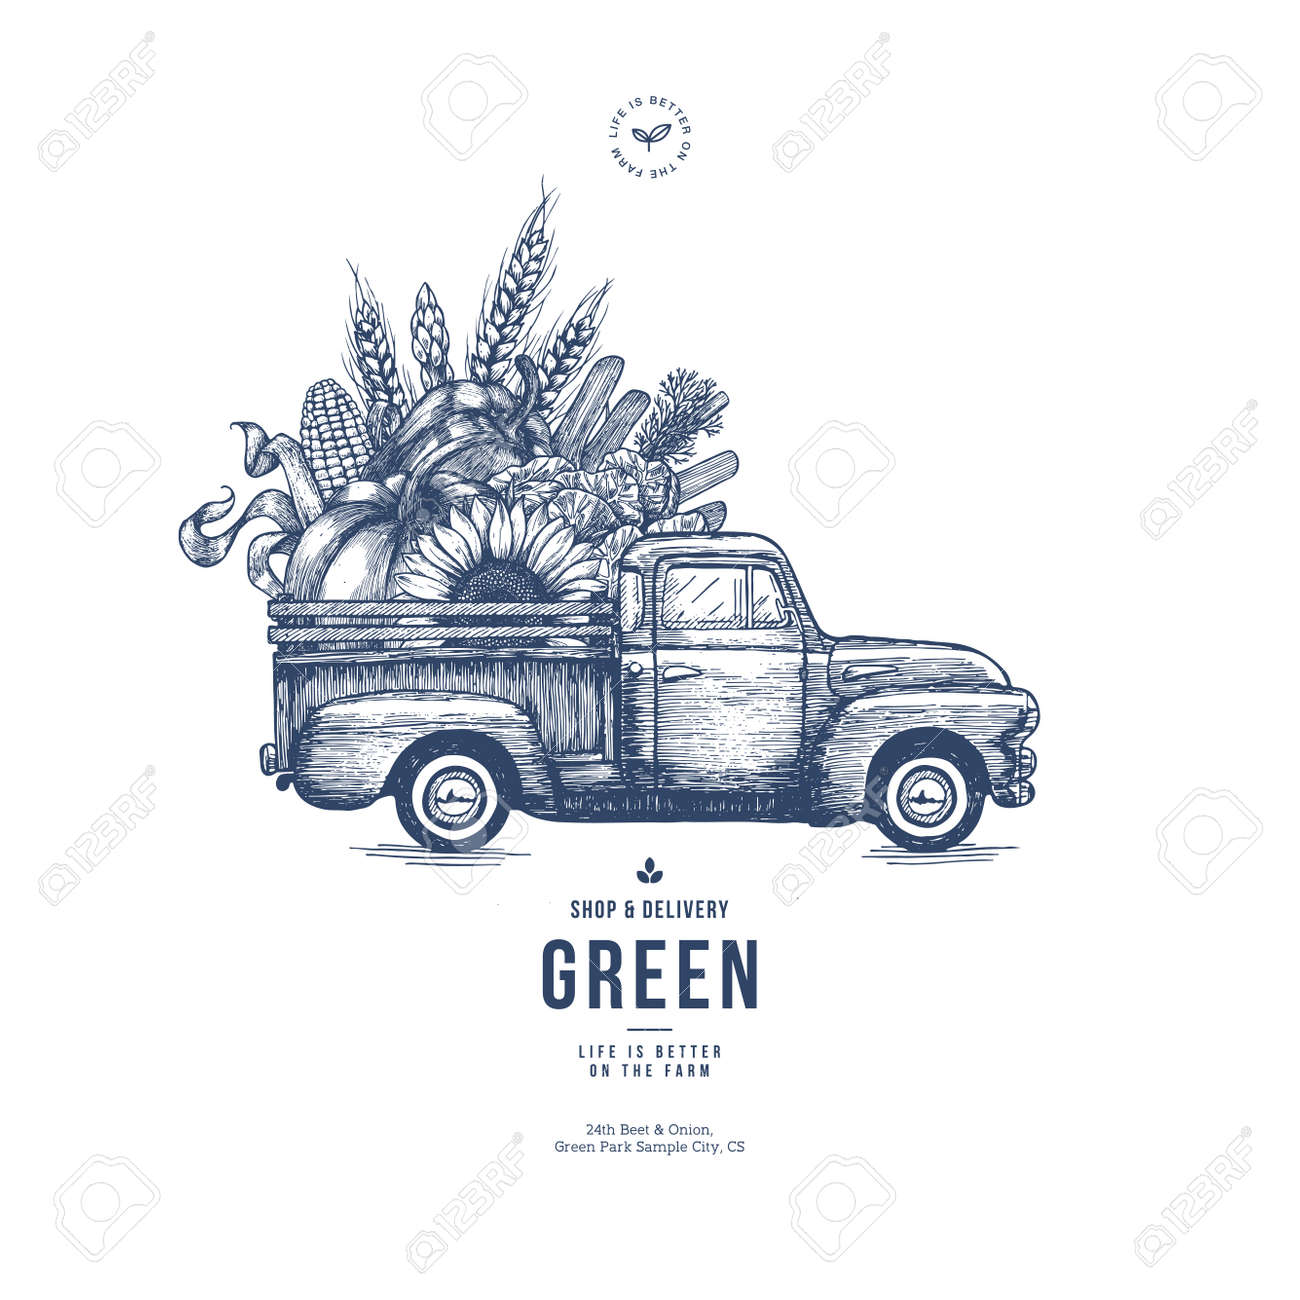 Farm fresh delivery design template. Classic vintage pickup truck with organic vegetables. Vector illustration - 89760937